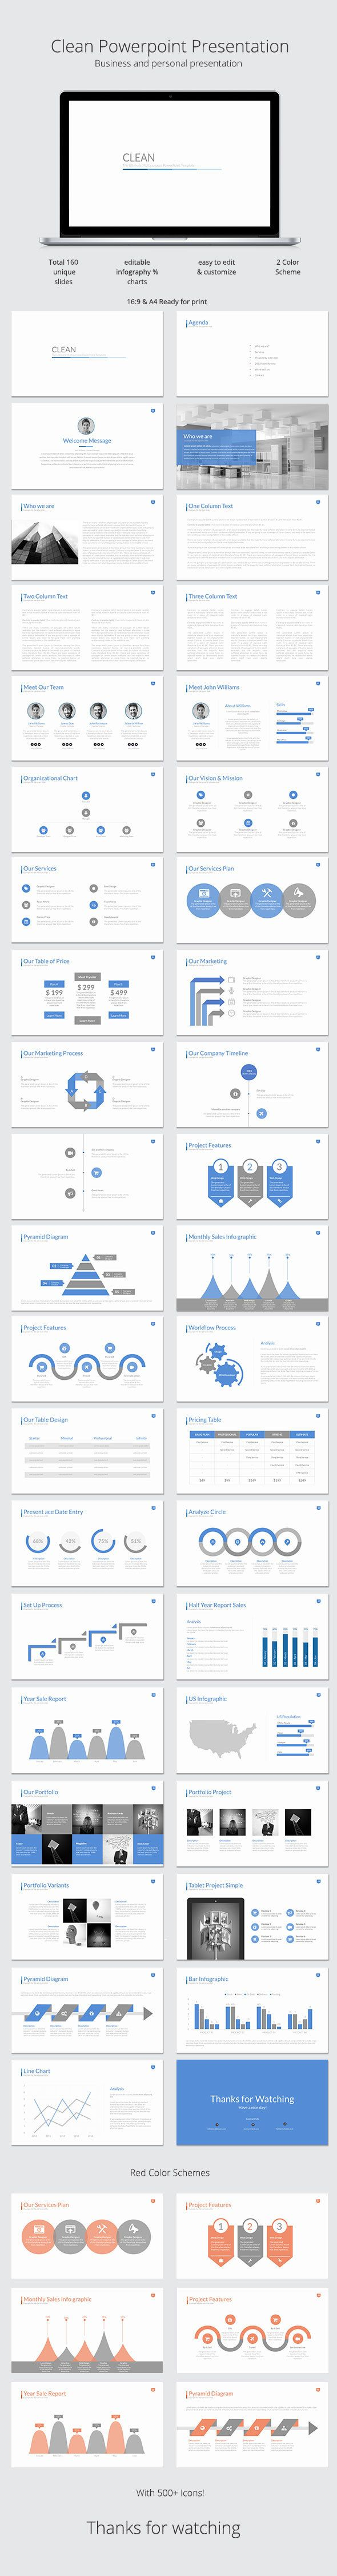 Coolmathgamesus  Mesmerizing  Ideas About Powerpoint Presentations On Pinterest With Engaging Clean Powerpoint Template With Delightful Powerpoint Free Background Templates Also Free Powerpoint Design Templates  In Addition Powerpoint Slide Images And Project In Powerpoint As Well As Powerpoint Dual Monitor Additionally Johari Window Powerpoint From Pinterestcom With Coolmathgamesus  Engaging  Ideas About Powerpoint Presentations On Pinterest With Delightful Clean Powerpoint Template And Mesmerizing Powerpoint Free Background Templates Also Free Powerpoint Design Templates  In Addition Powerpoint Slide Images From Pinterestcom